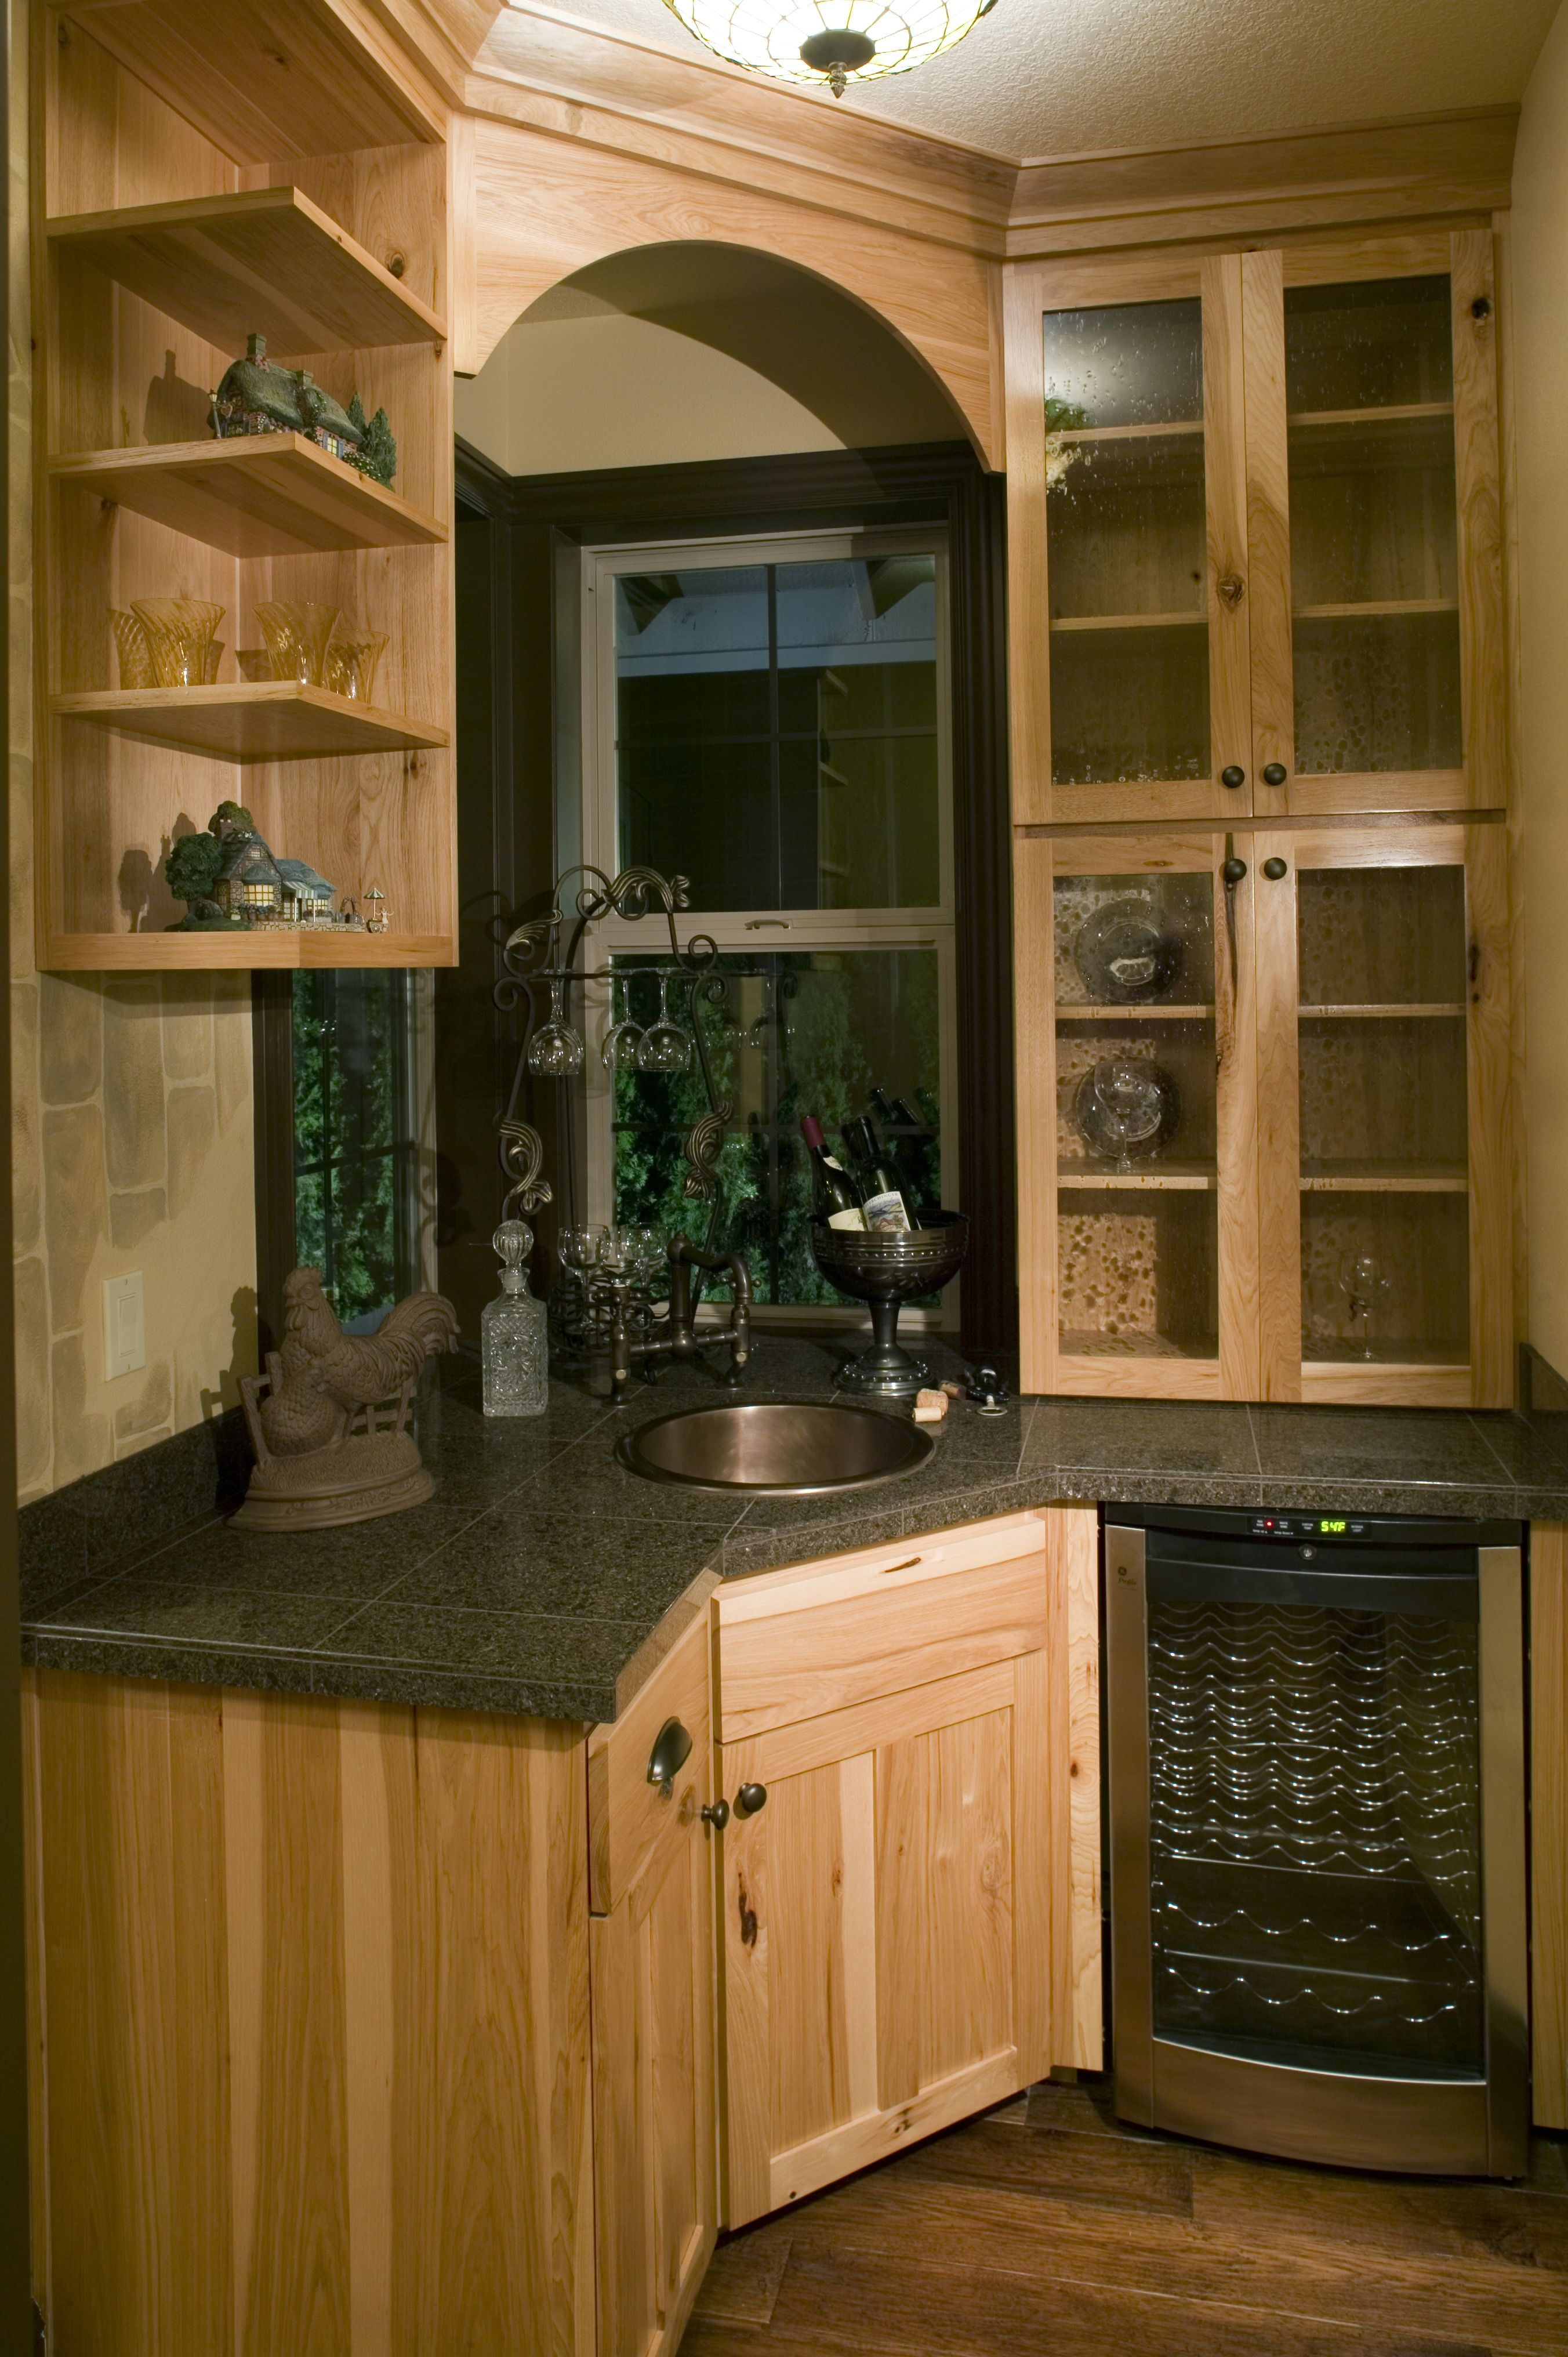 Want to replace or add countertops learn more about kitchen